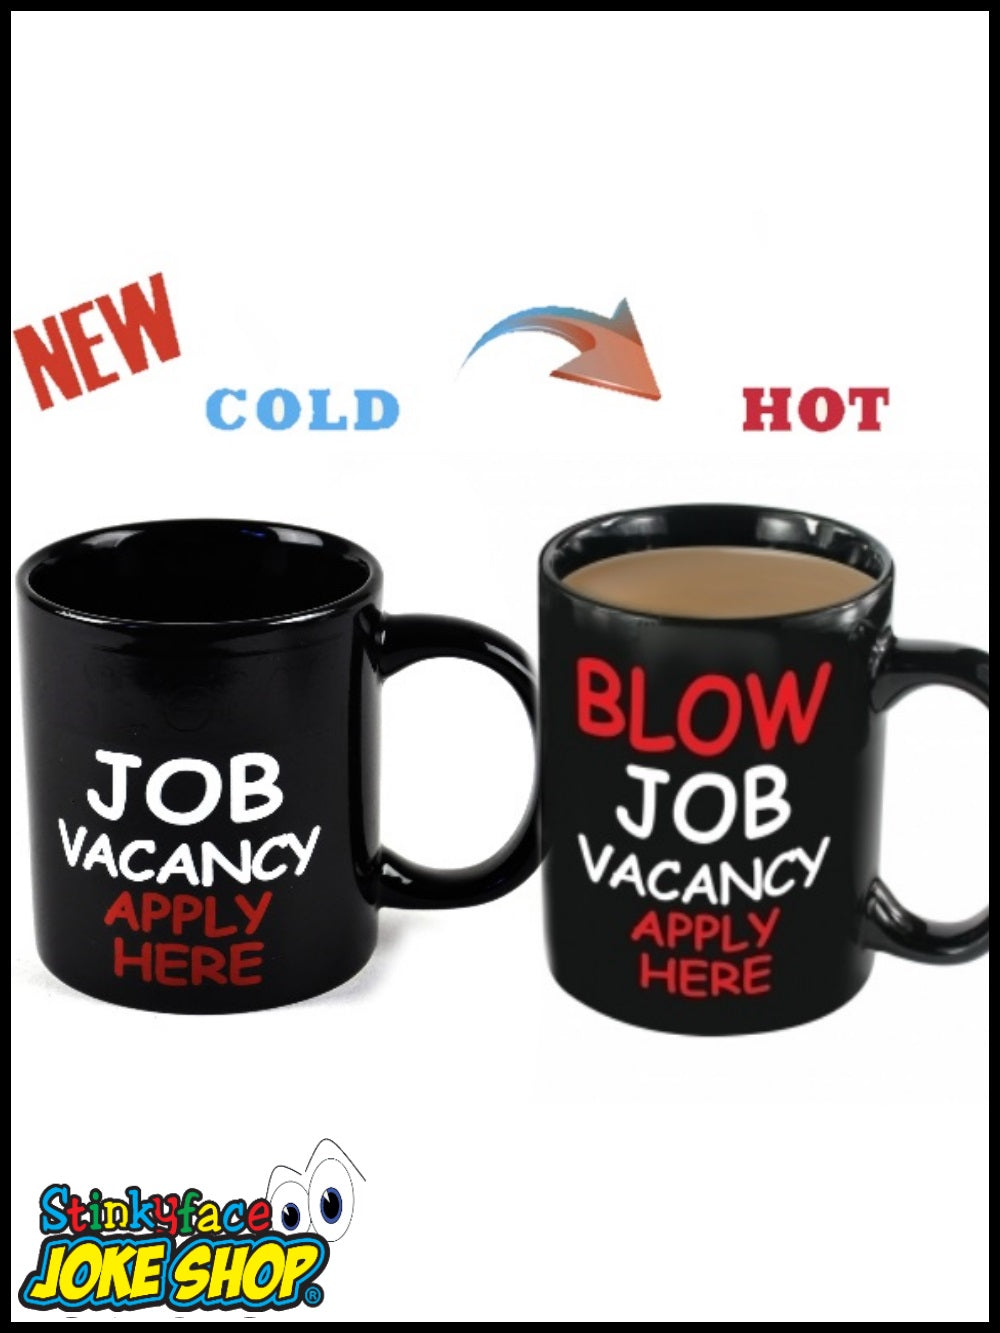 Blow Job Vacancy - Heat Revealing Mug